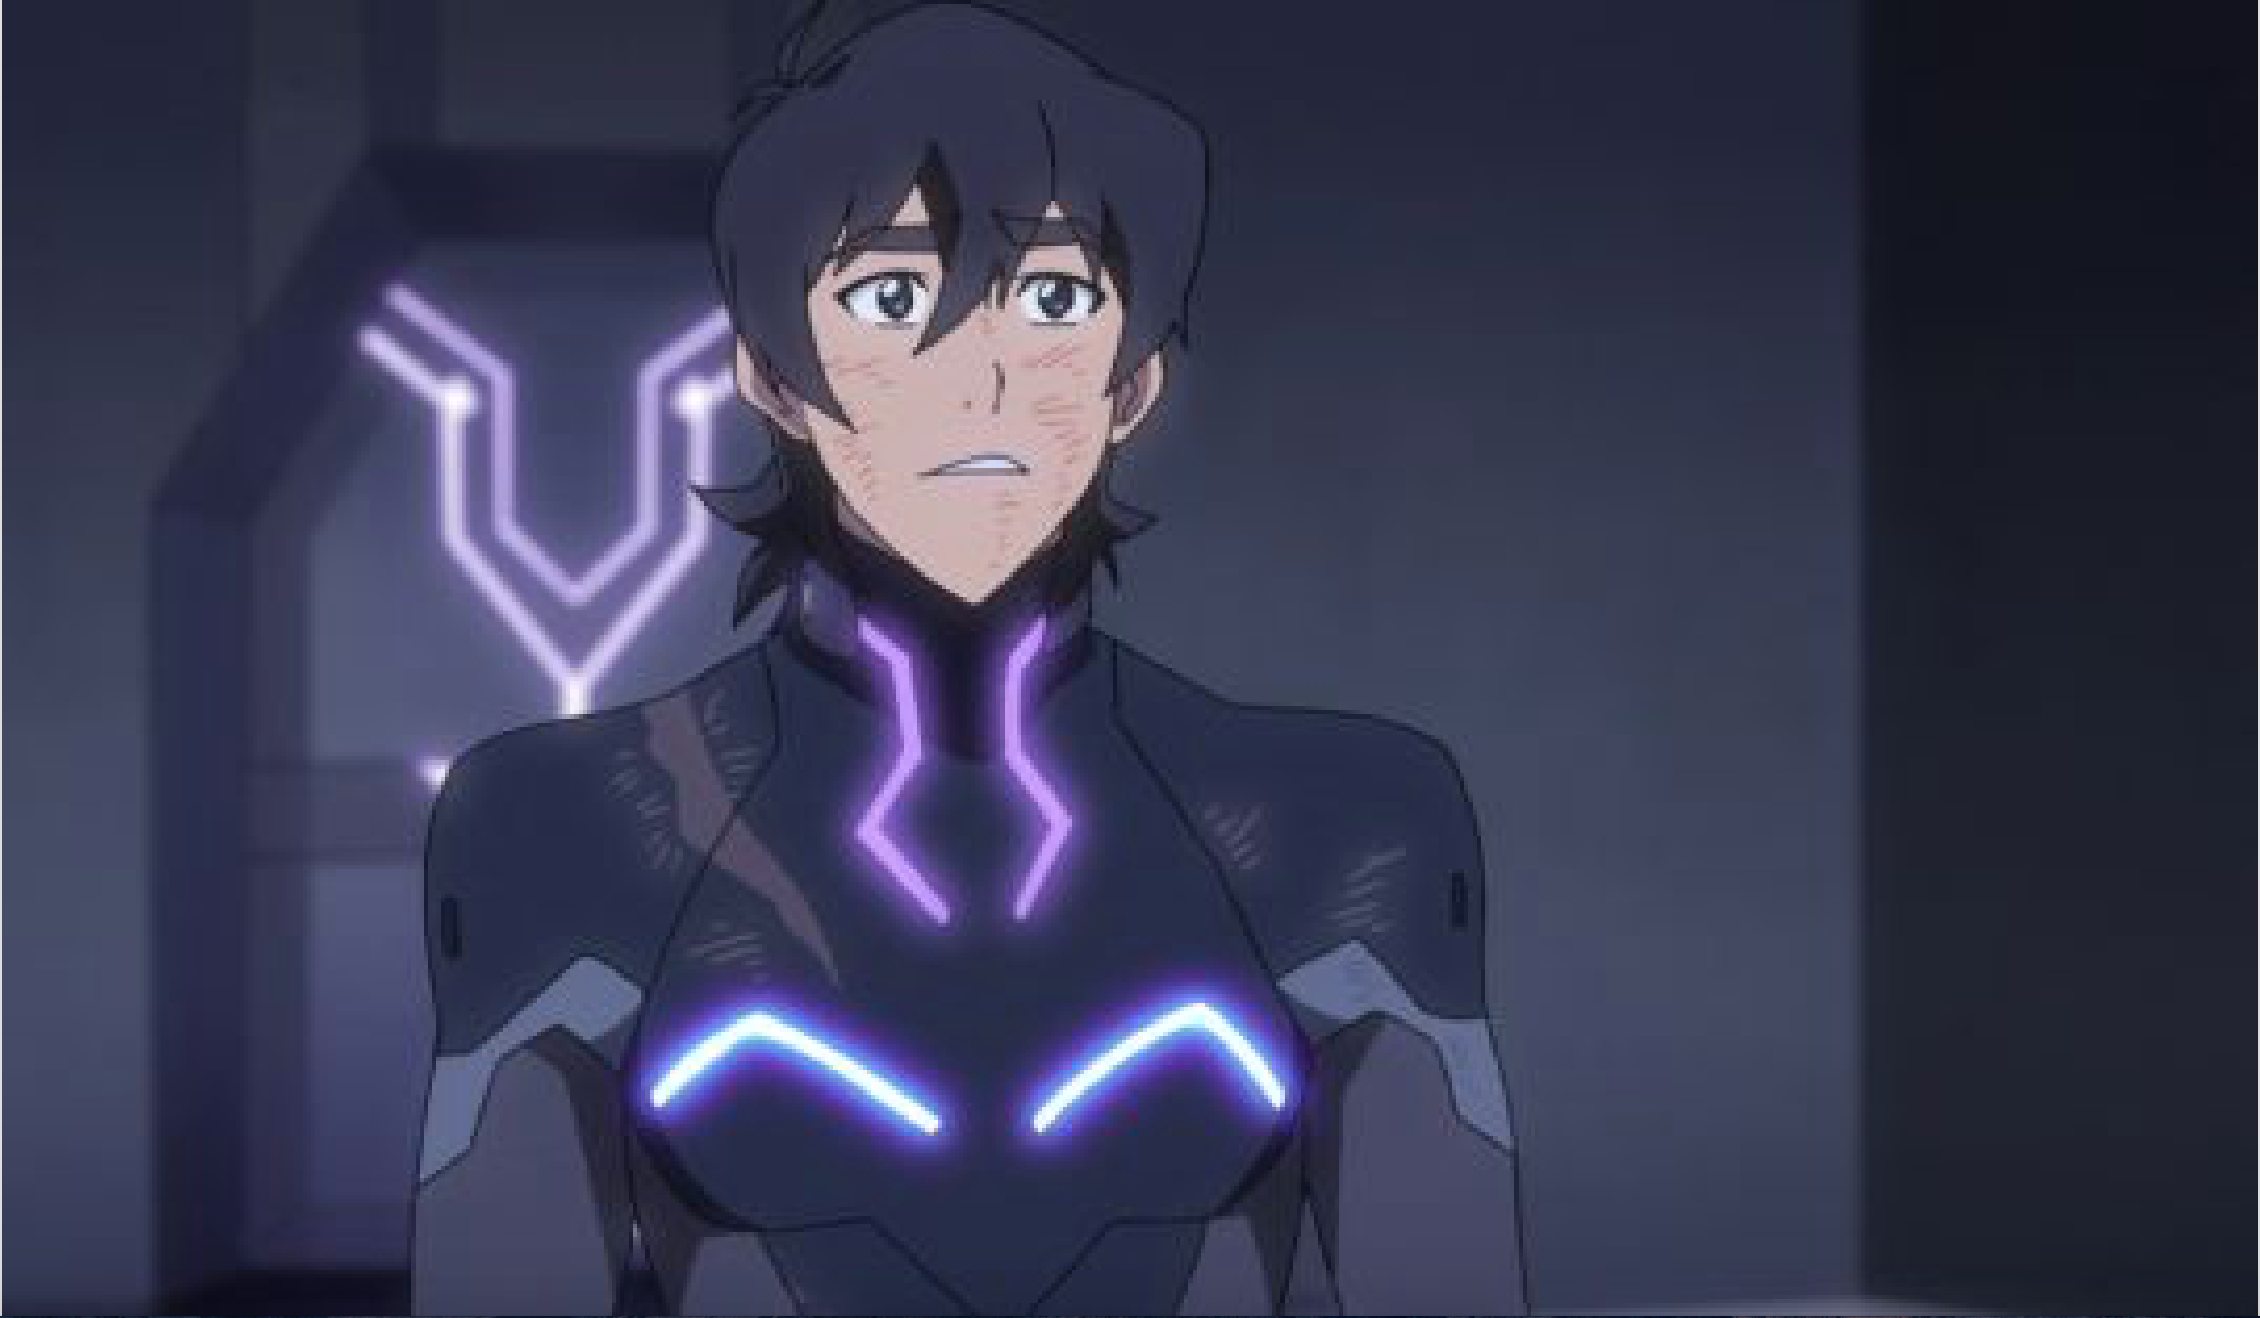 Keith In His Galra Armor In Fighting Battle Challenge In